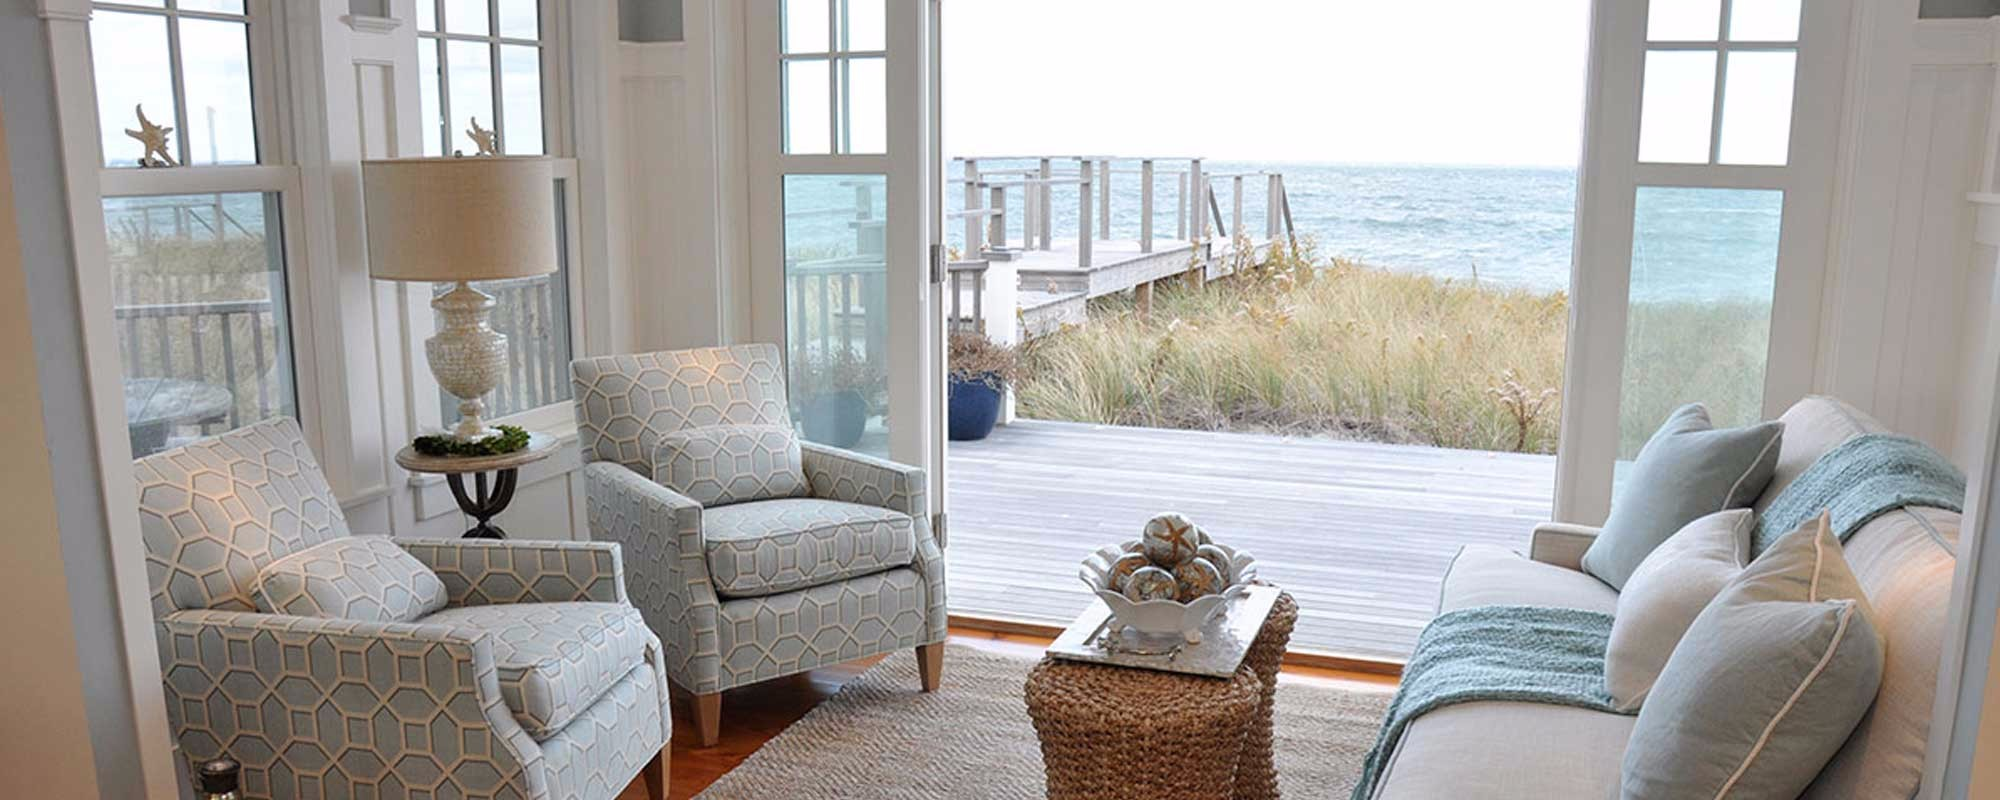 Interior design cape cod ma casabella interiors for Decor interior design